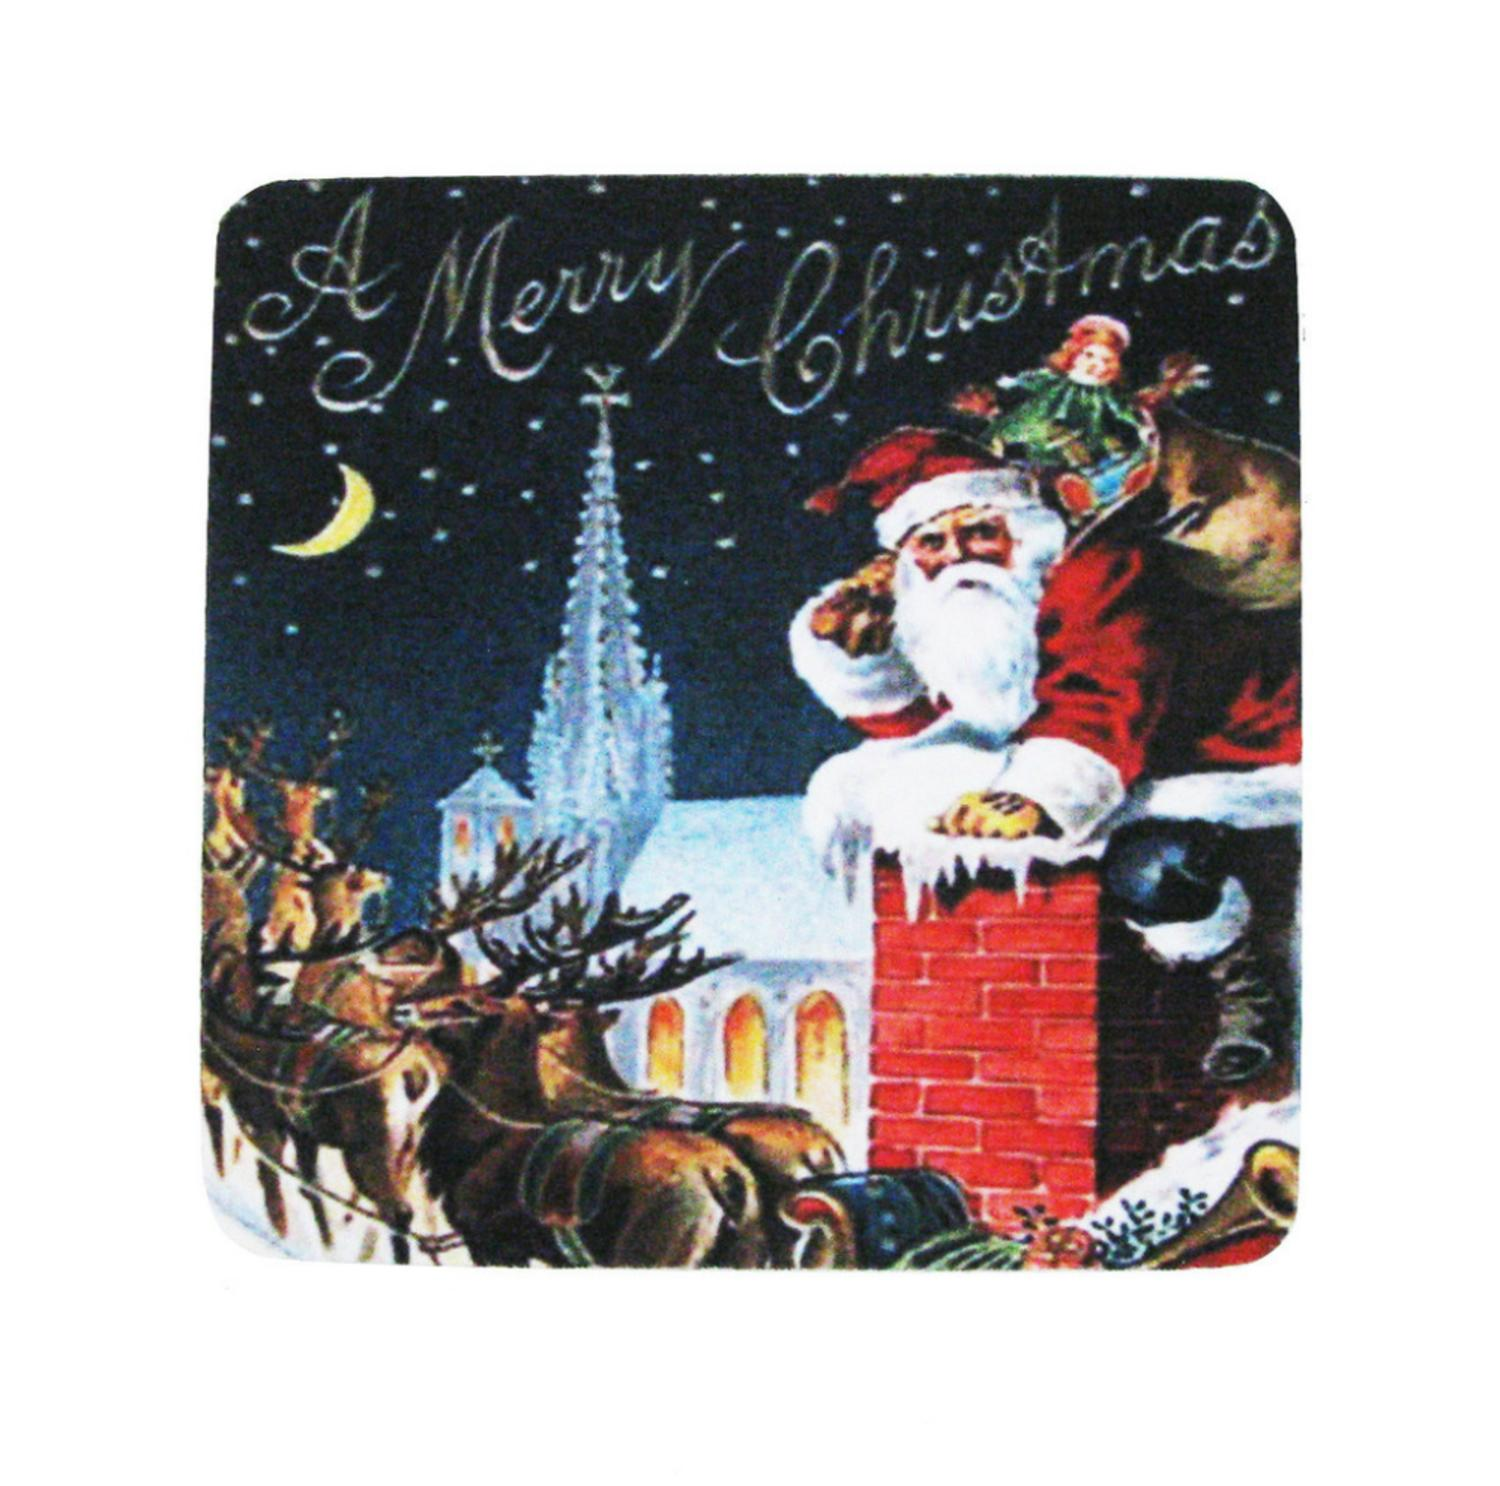 Pack of 8 Absorbent Santa Claus Chimney Merry Christmas Cocktail Drink Coasters 4""